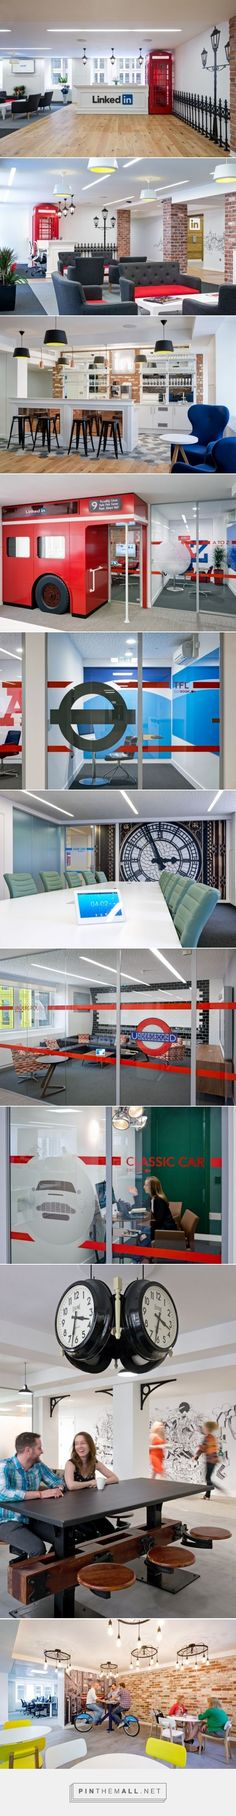 LinkedIn Office by Denton Associates, London – UK » Retail Design Blog http://retaildesignblog.net/2015/08/18/linkedin-office-by-denton-associate... - a grouped images picture - Pin Them All